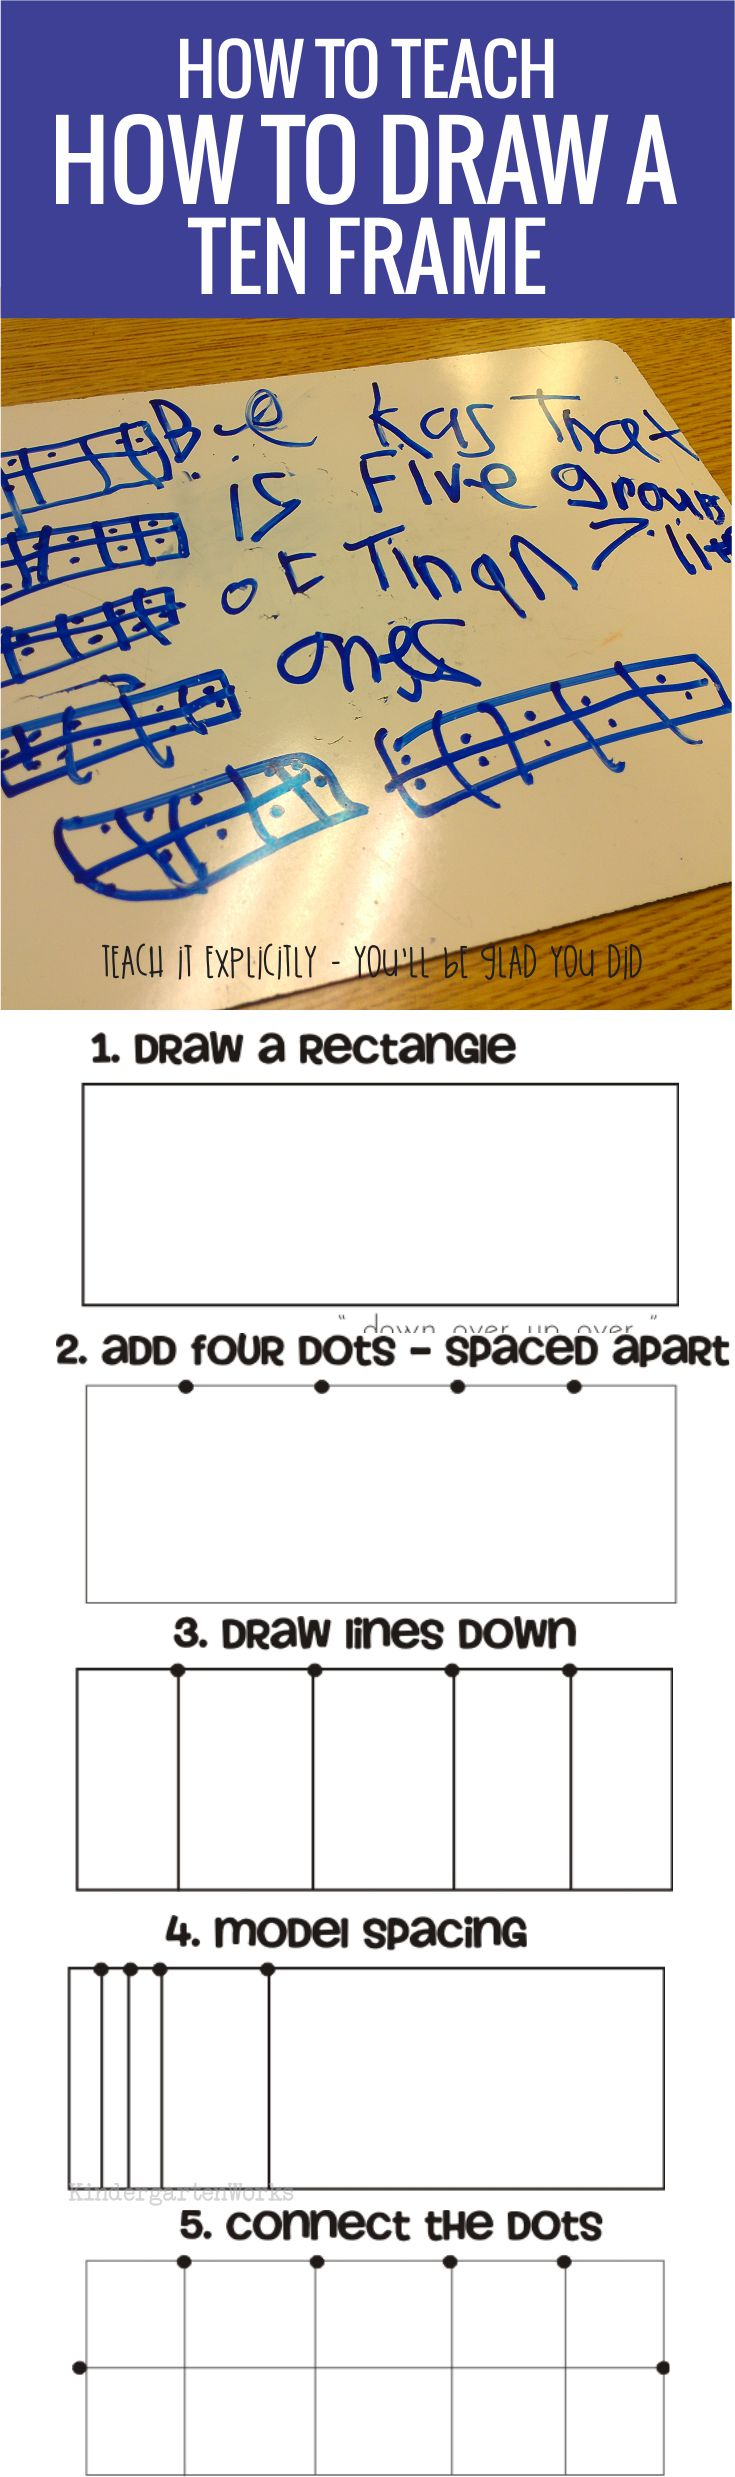 How to teach how to draw a ten frame - this is so easy I have to do this